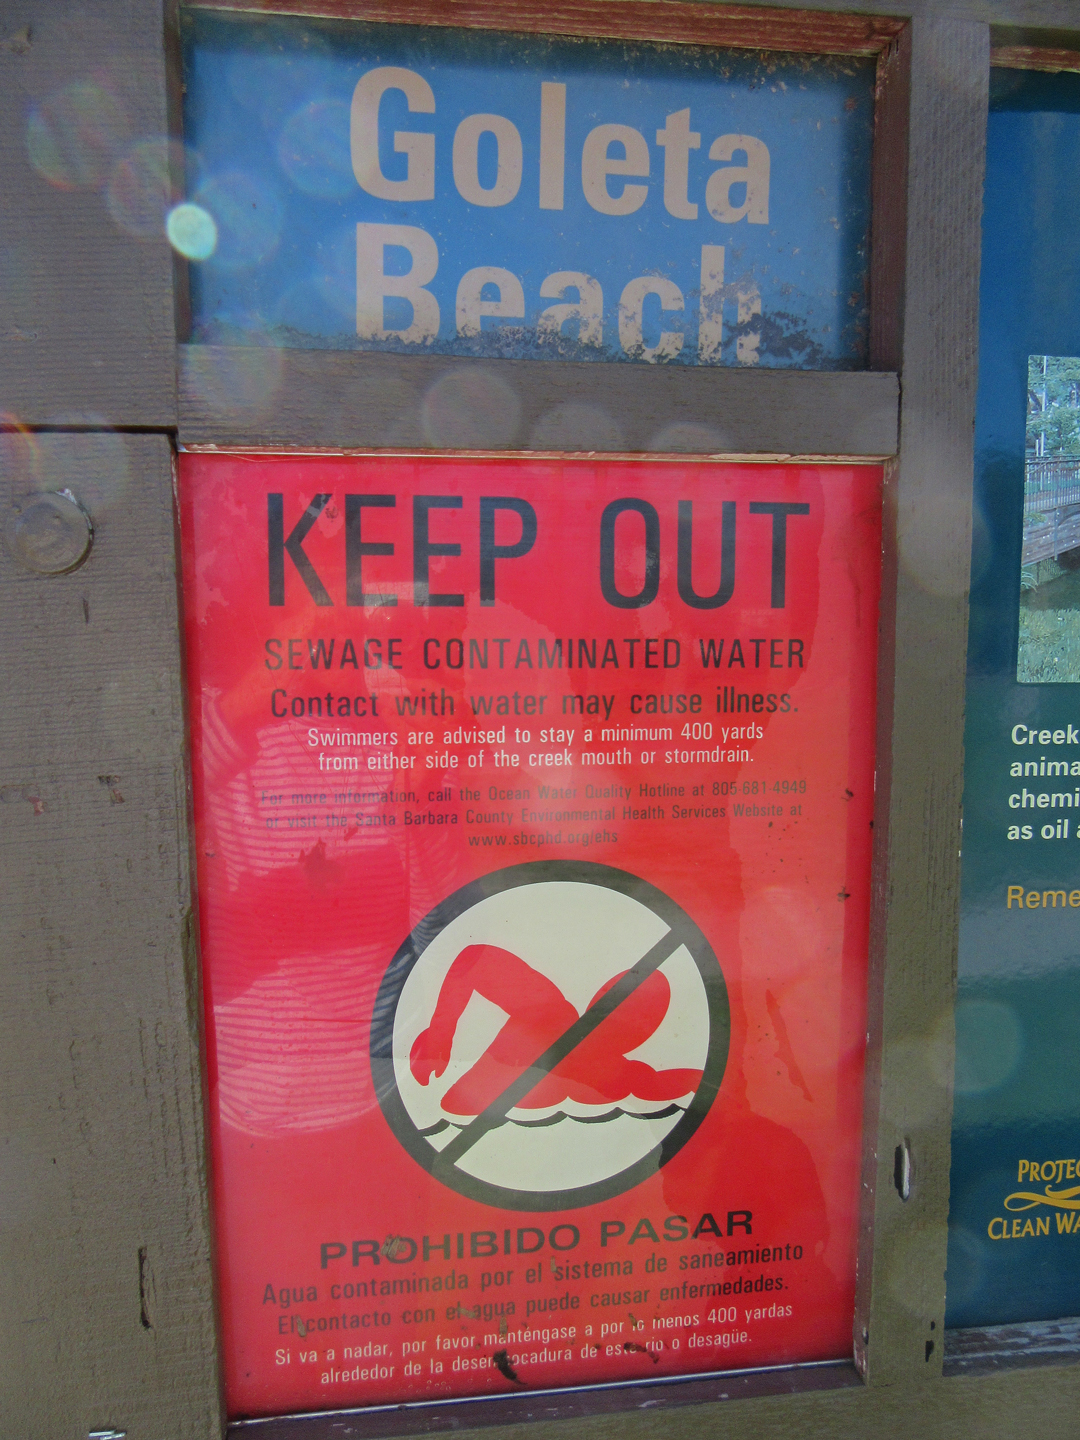 Digging out montecito means wider beaches dirtier waters off signs at goleta beach warn people to stay out of the ocean water nvjuhfo Gallery